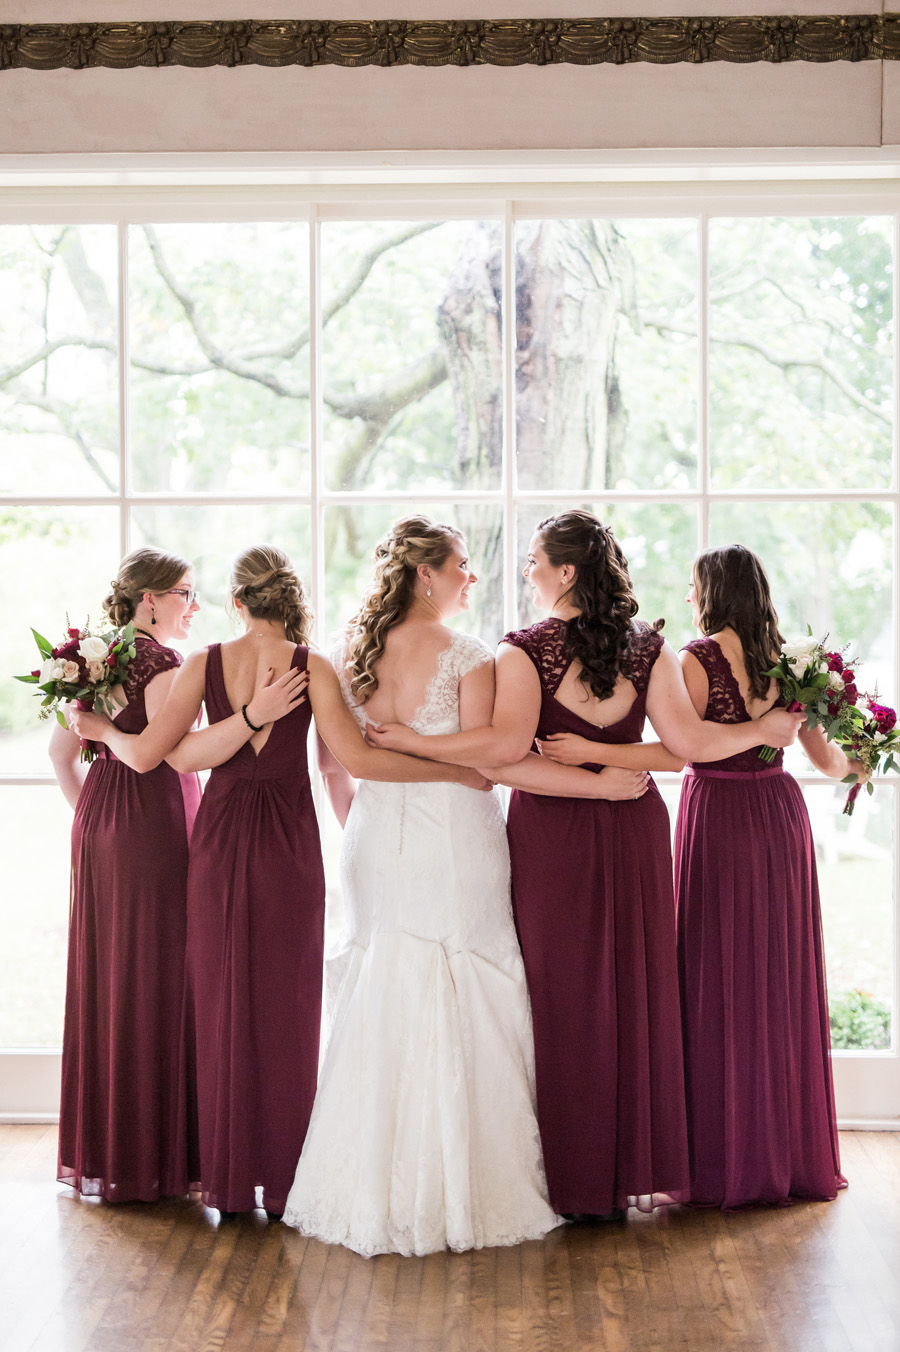 Group photo of bride and her bridesmaids.